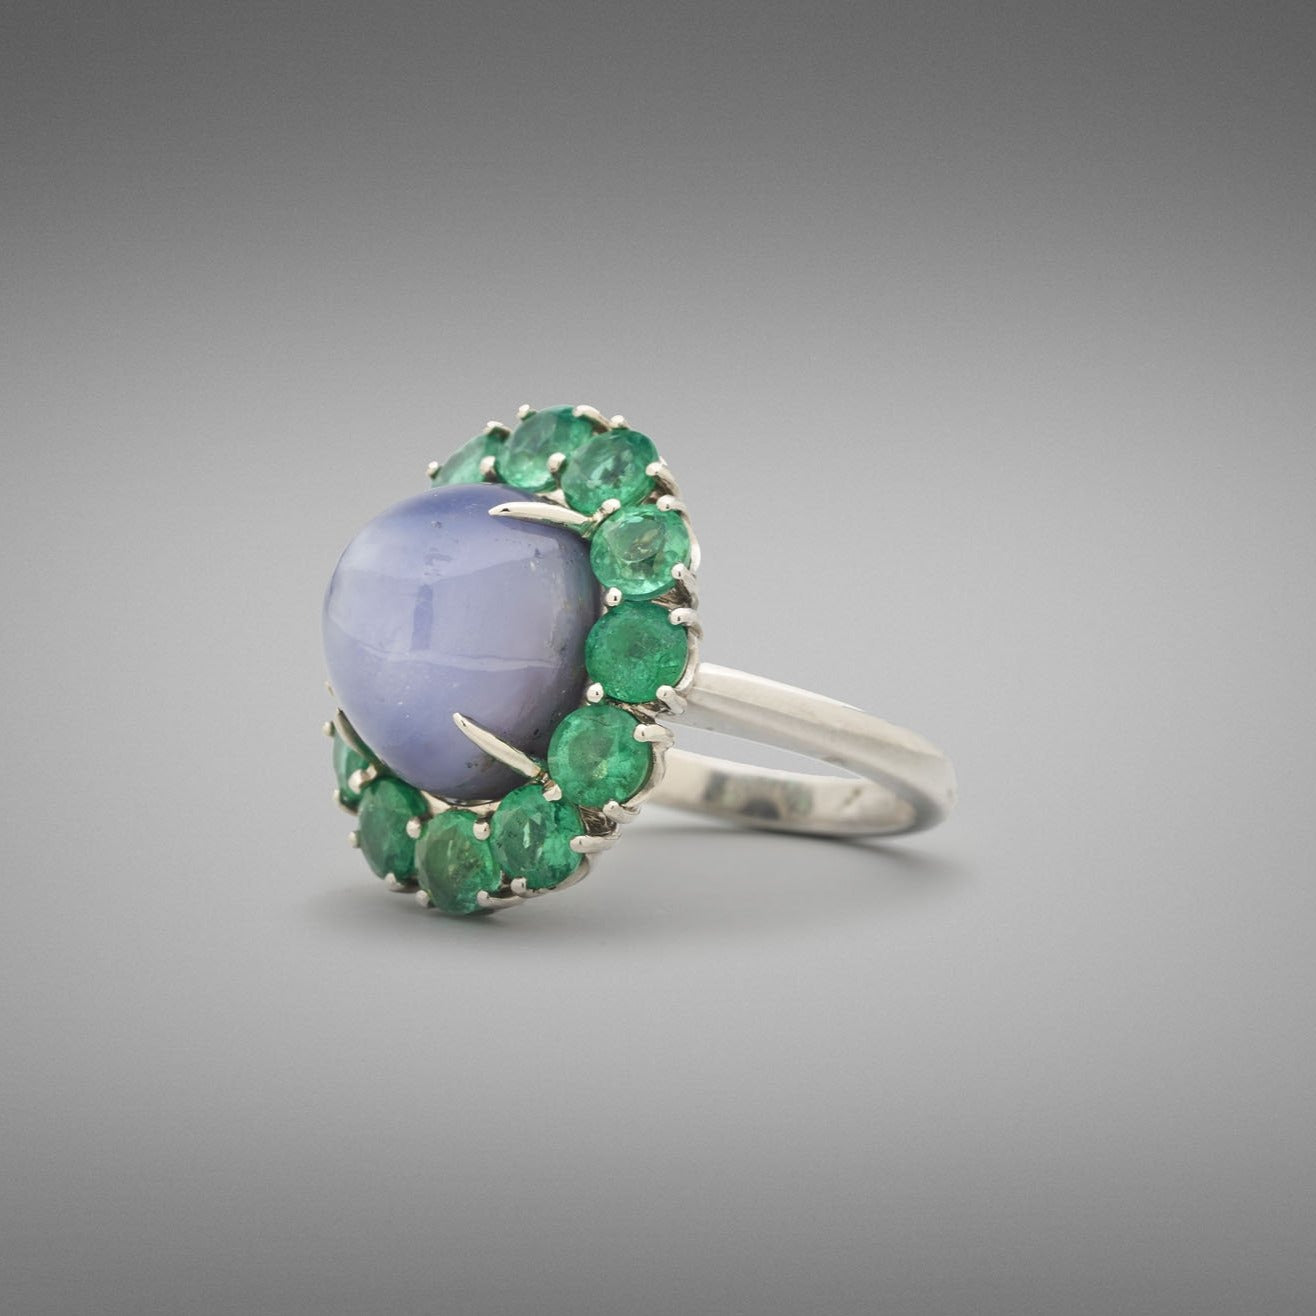 A BUNDA 'Cluster' ring made in platinum, centre set with a high domed blue star sapphire in a flour claw platinum setting. The centre stone is surrounded by a cluster of round brilliant cut emeralds in four claw settings.  Characteristics of Star Sapphire: 1 = 18.15ct  Characteristics of Emeralds: 12 = 3.35cts  Ring is stamped 'BUNDA' Total weight: 14.70 grams